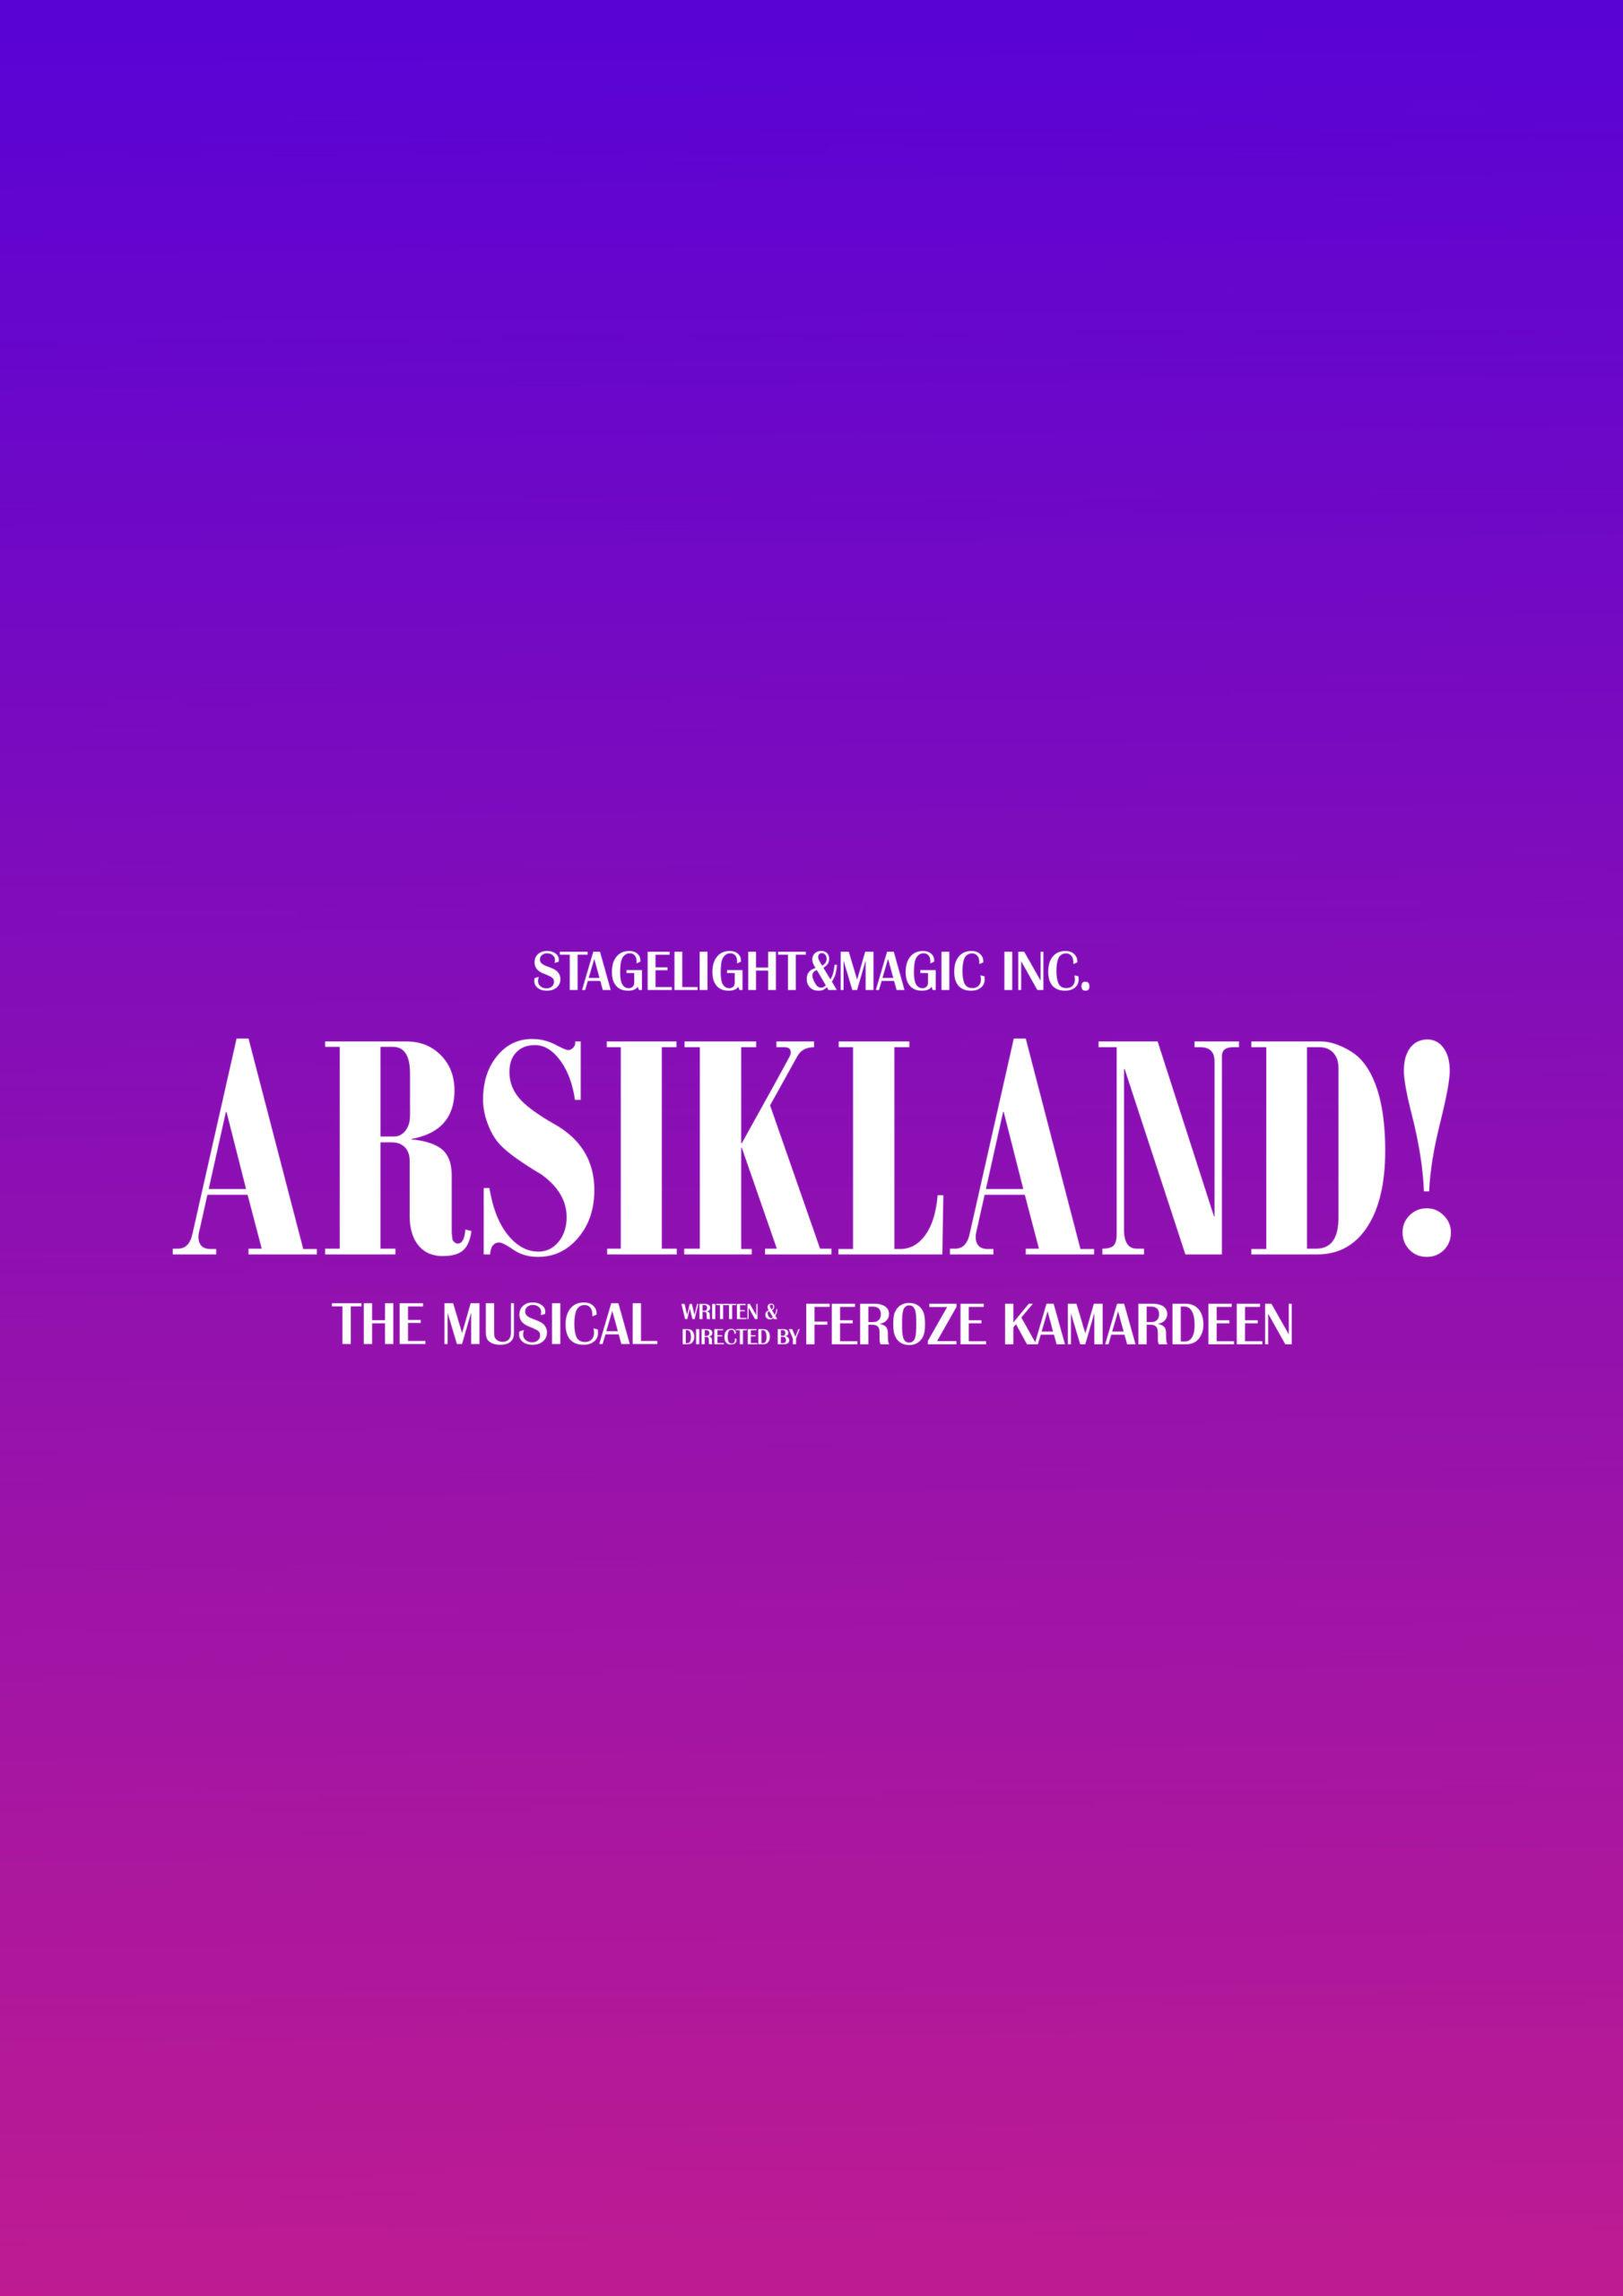 arsikland the musical